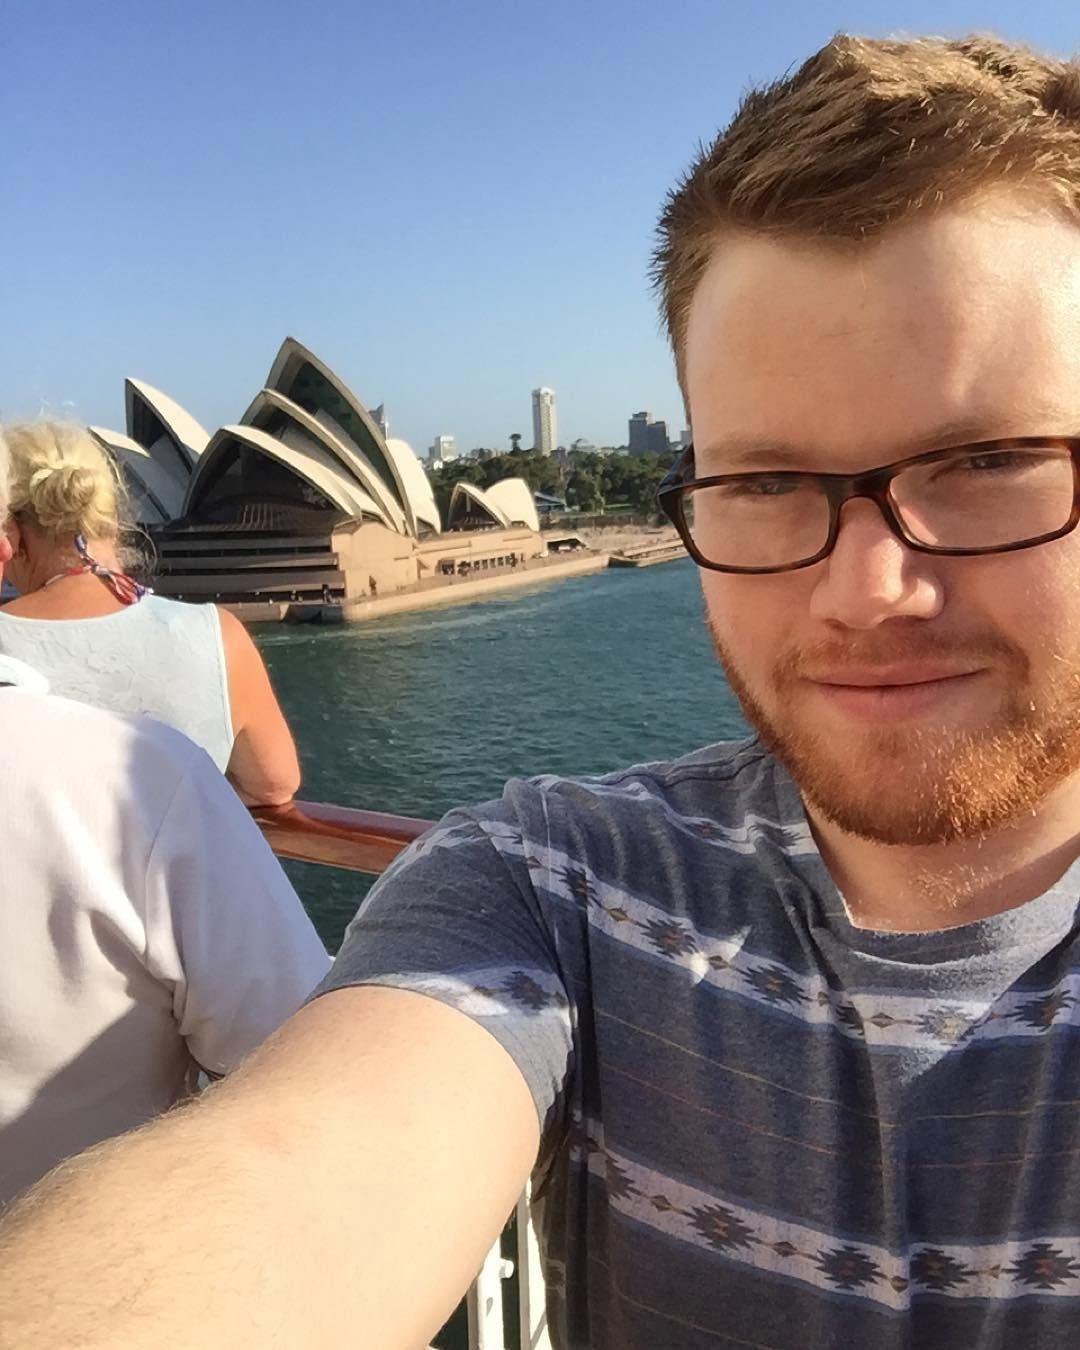 So I'm on a boat... Surprise PianoMan contract for 3 weeks on the P&O Pacific Aria! See you later Sydney! Will no doubt be posting heaps ;) #pacificaria #pianoman #pianist #singer #cruise #pianobar #sealife #instagay #sydney #brisbane #sydneygay #gaysydney #gaybrisbane #brisbanegay #instahomo #gayscruff #gayginger @gaysandglasses @beardedgays @gaysydneyaustralia by johnmilliganmusic